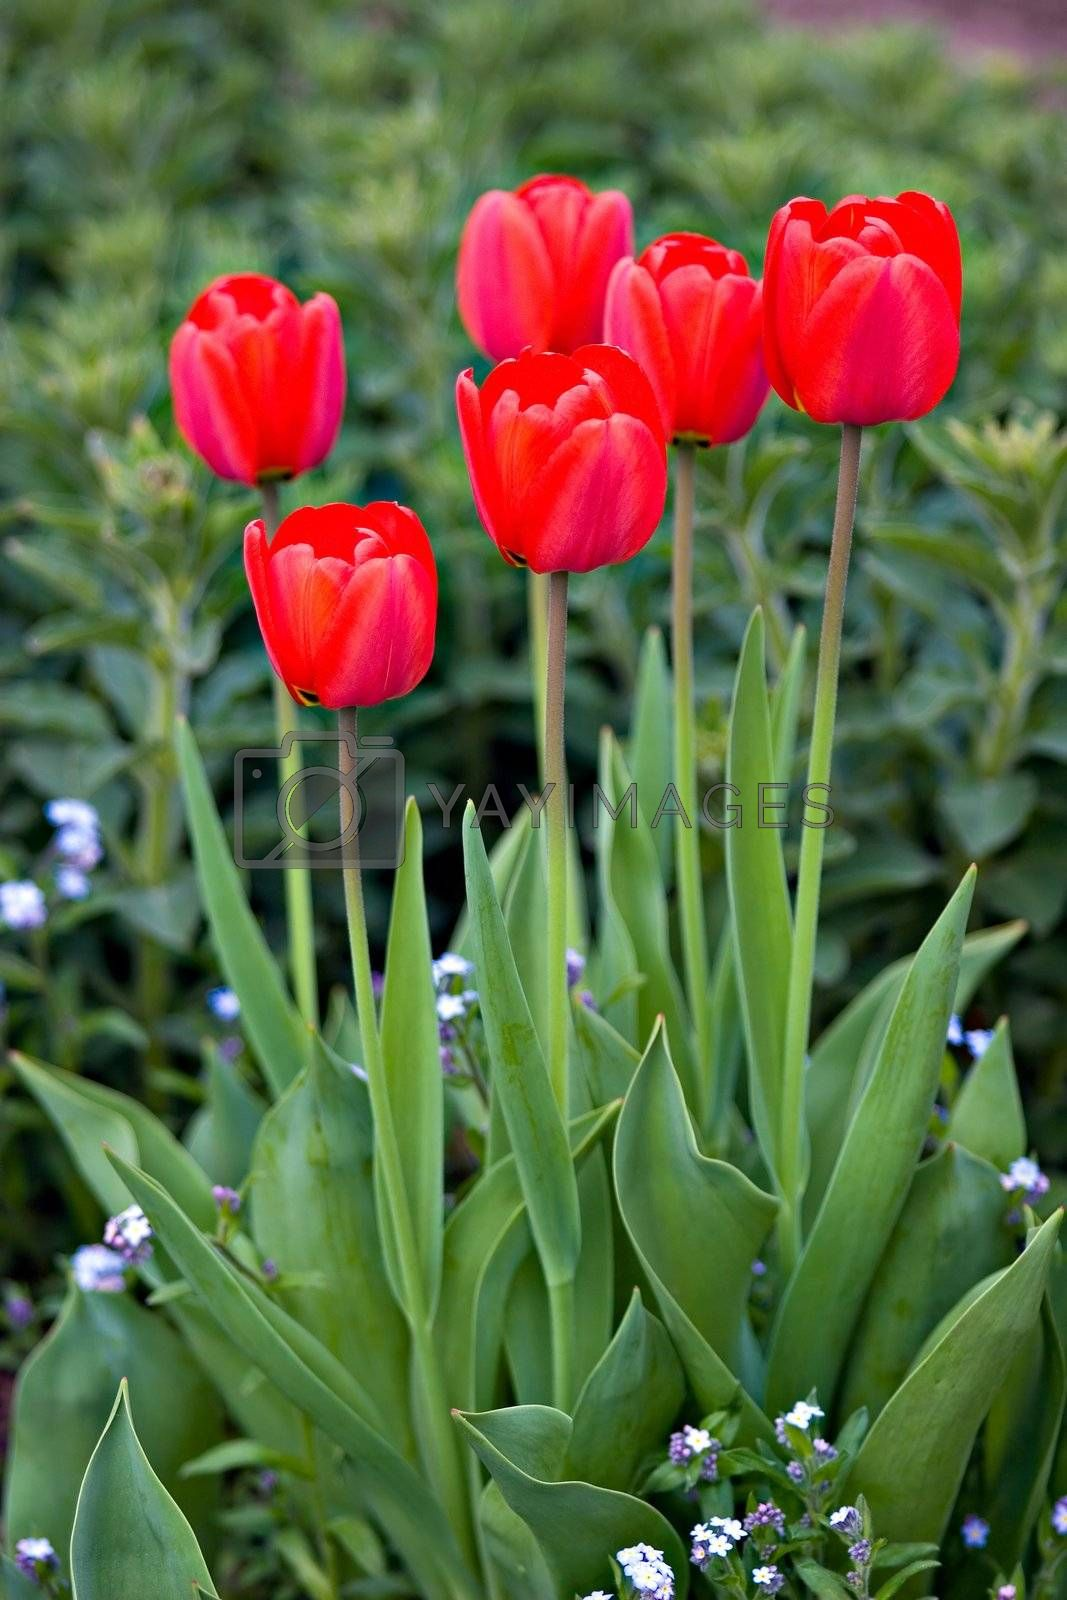 A bunch of red tulips in a garden.